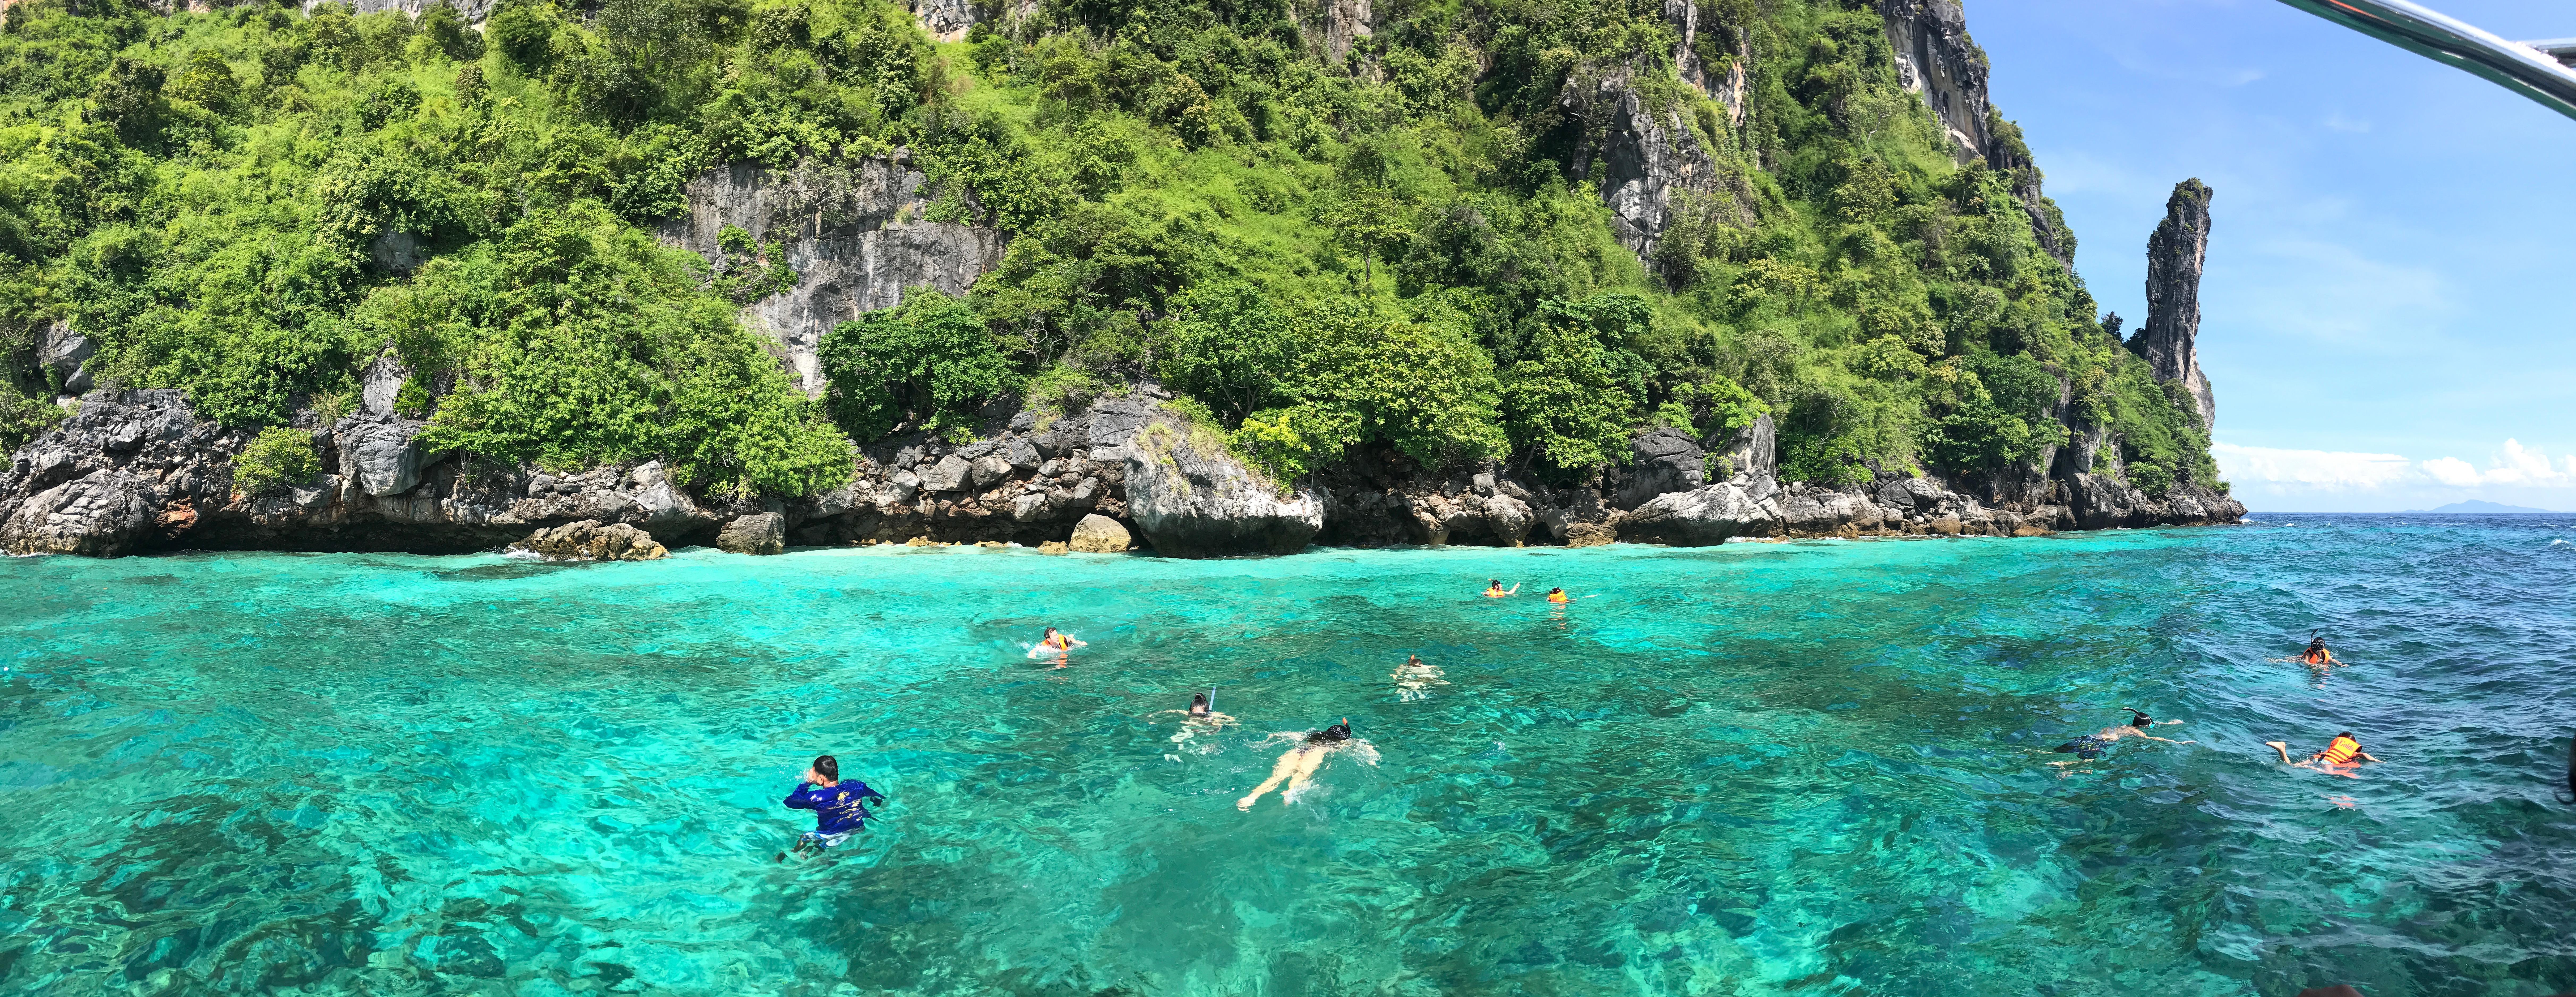 Phi Phi islands tours